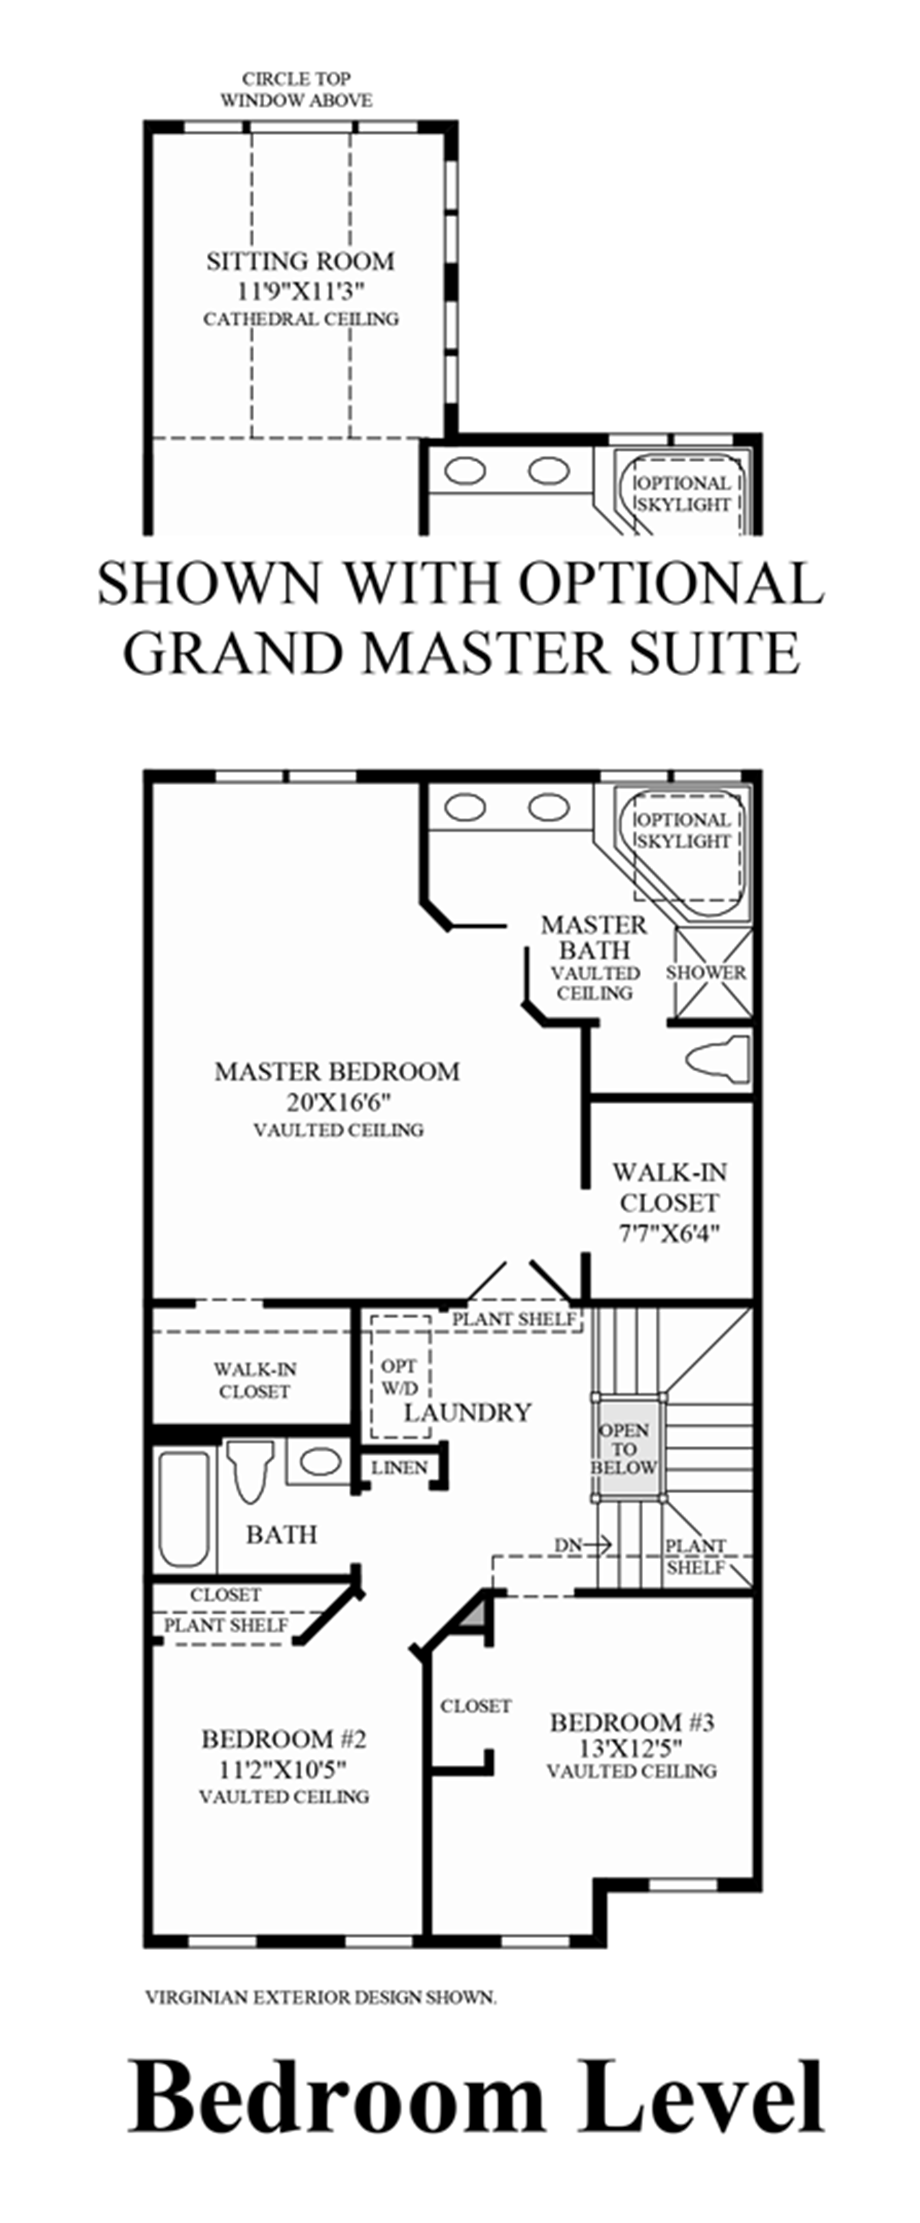 Bedroom Level (Living Level Entry) Floor Plan